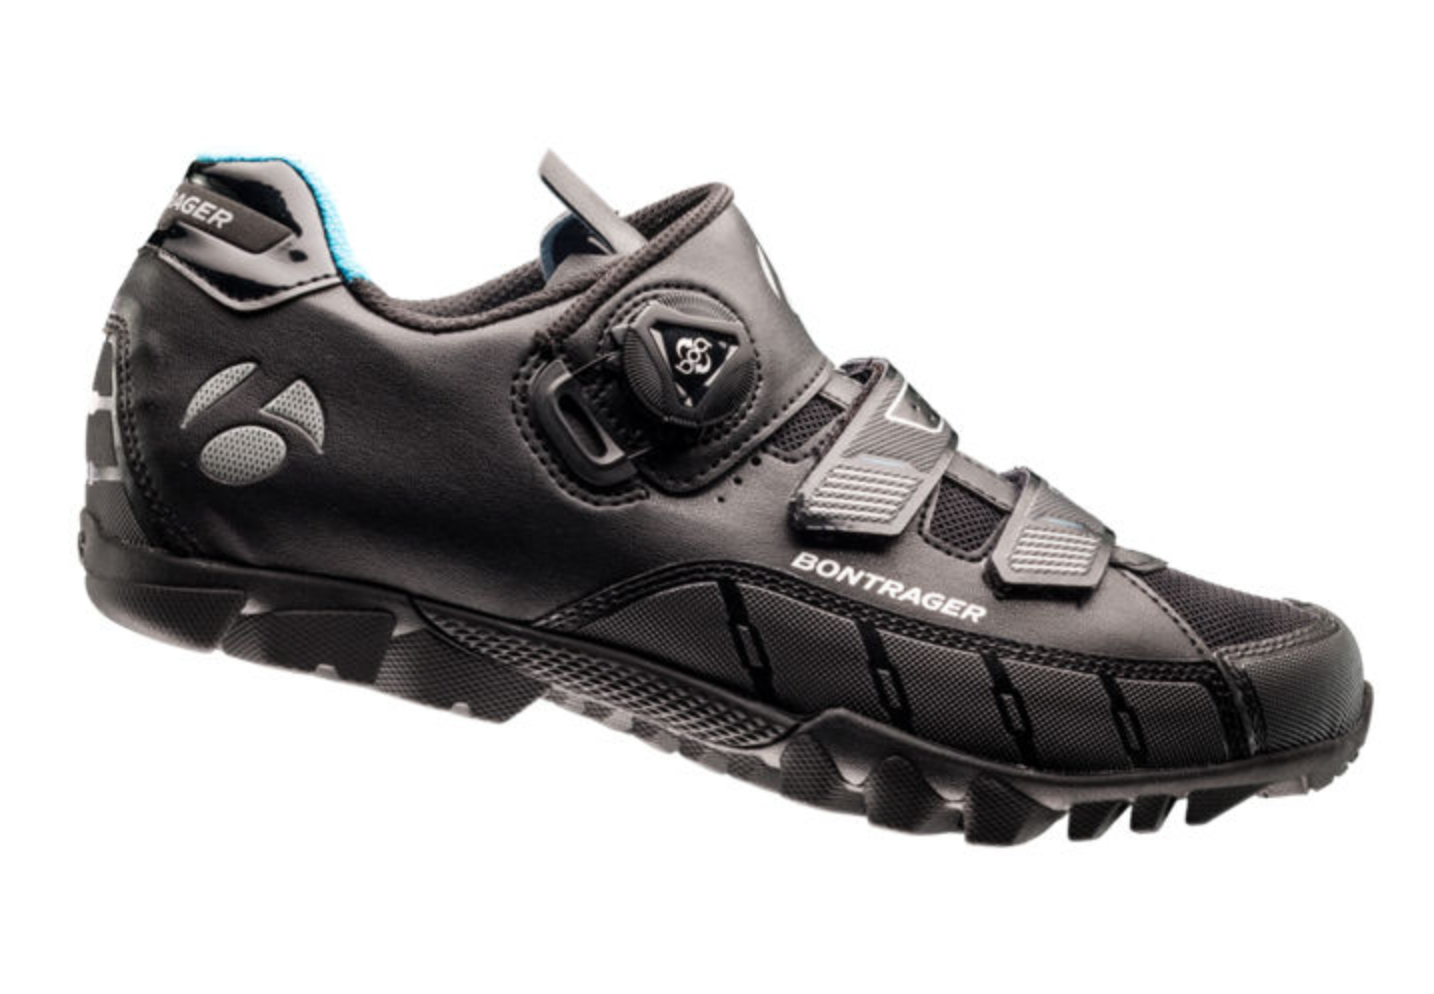 Bontrager Igneo Womens Cycling Shoe